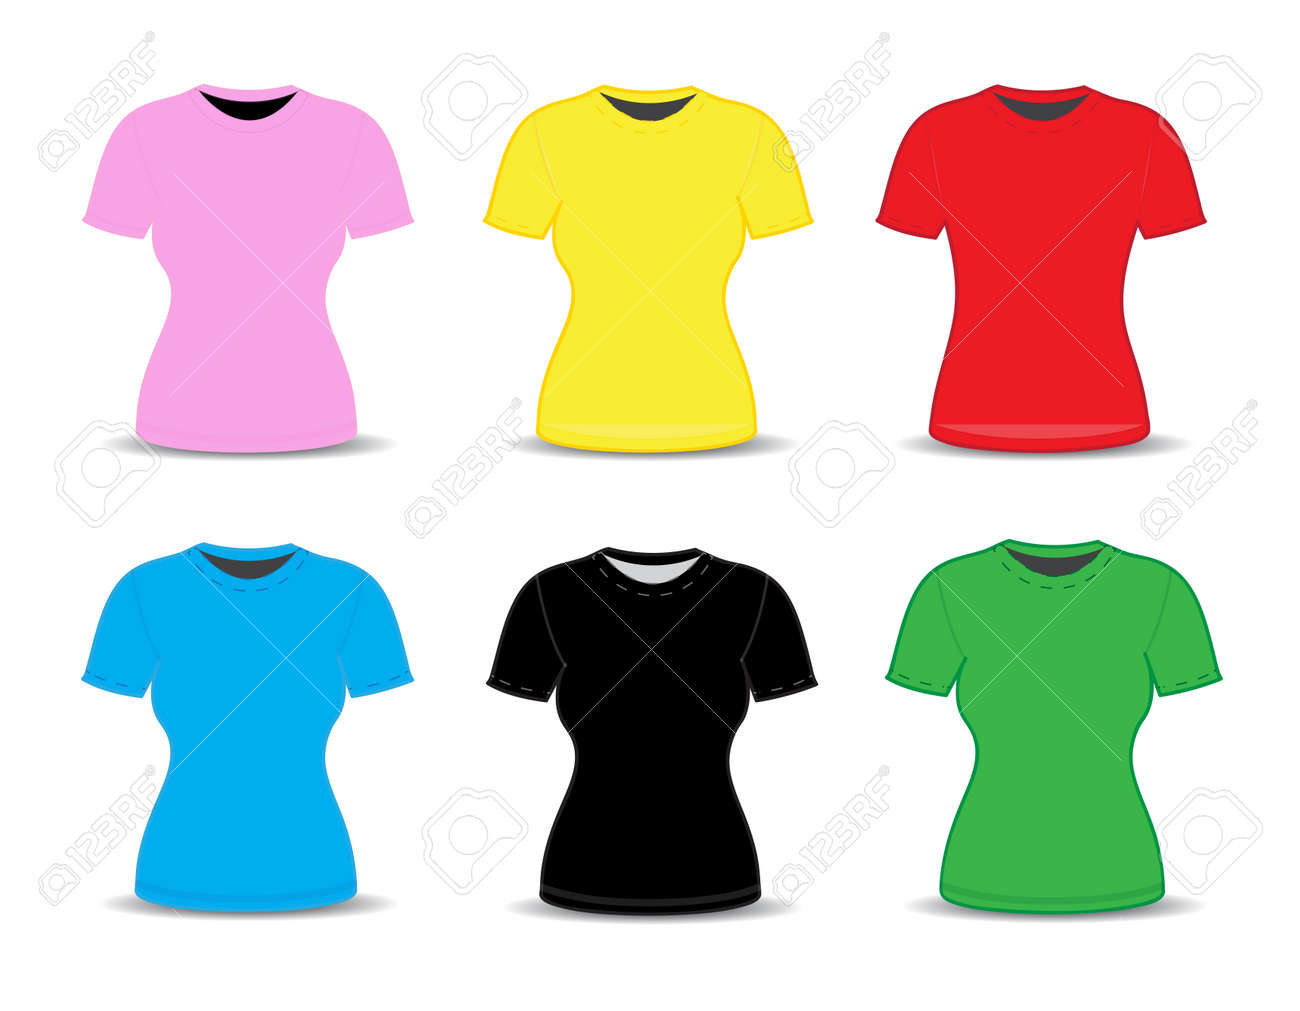 blank t shirt template vector illustration royalty free cliparts